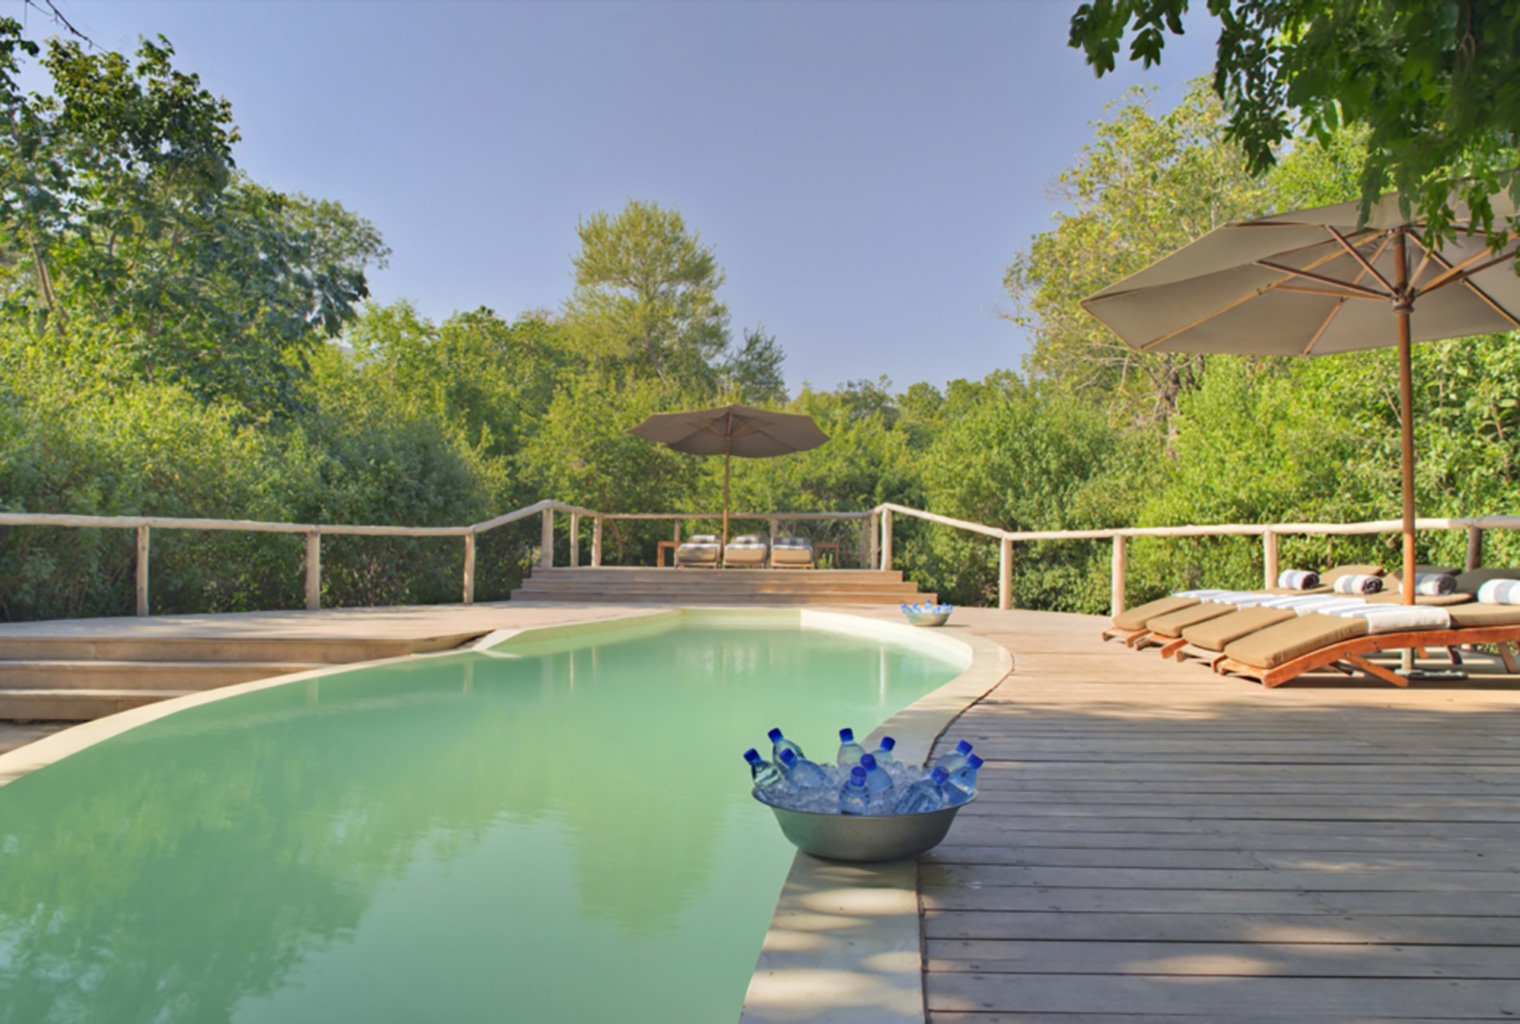 Manyara-Tree-Lodge-Crop-Pool